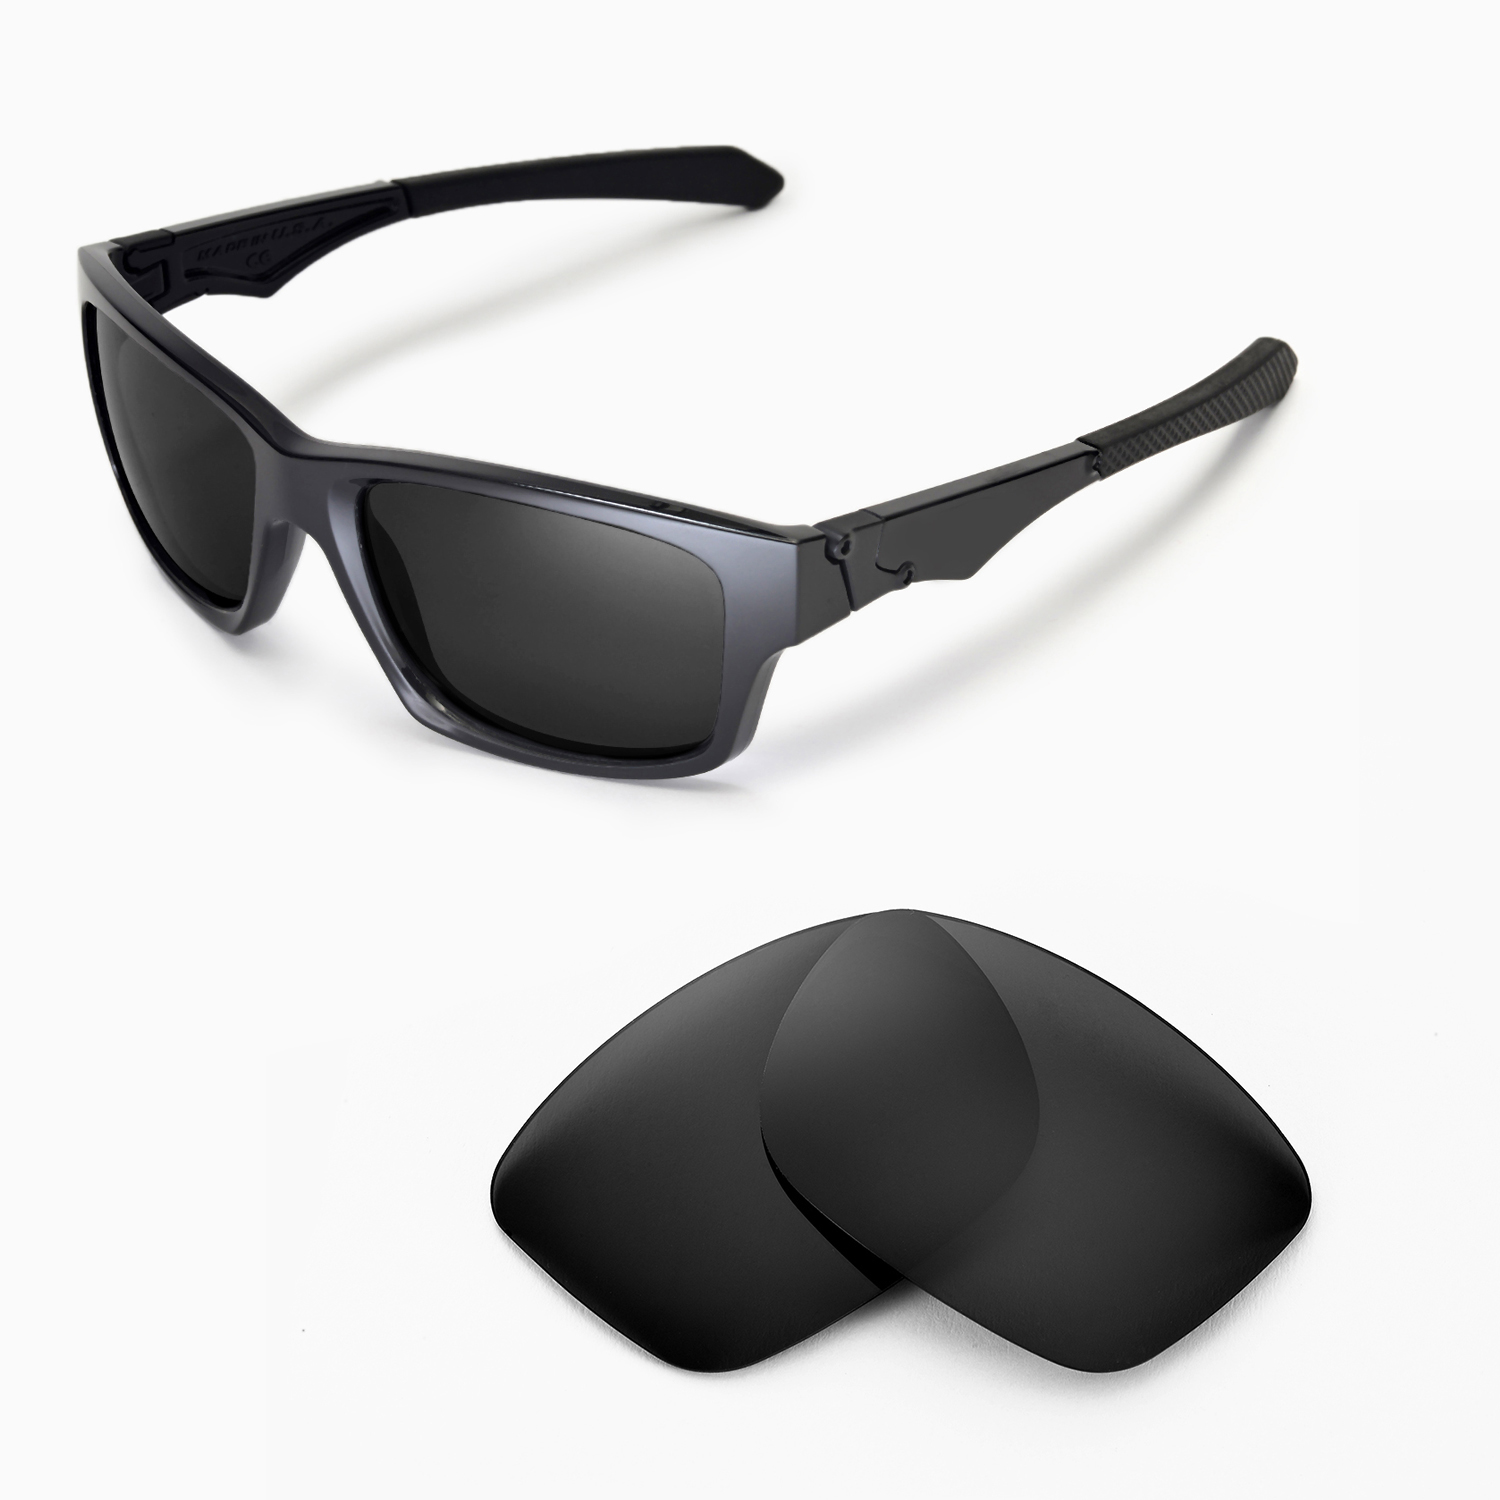 6723ef42d85 Details about New WL Polarized Black Replacement Lenses For Oakley Jupiter  Squared Sunglasses